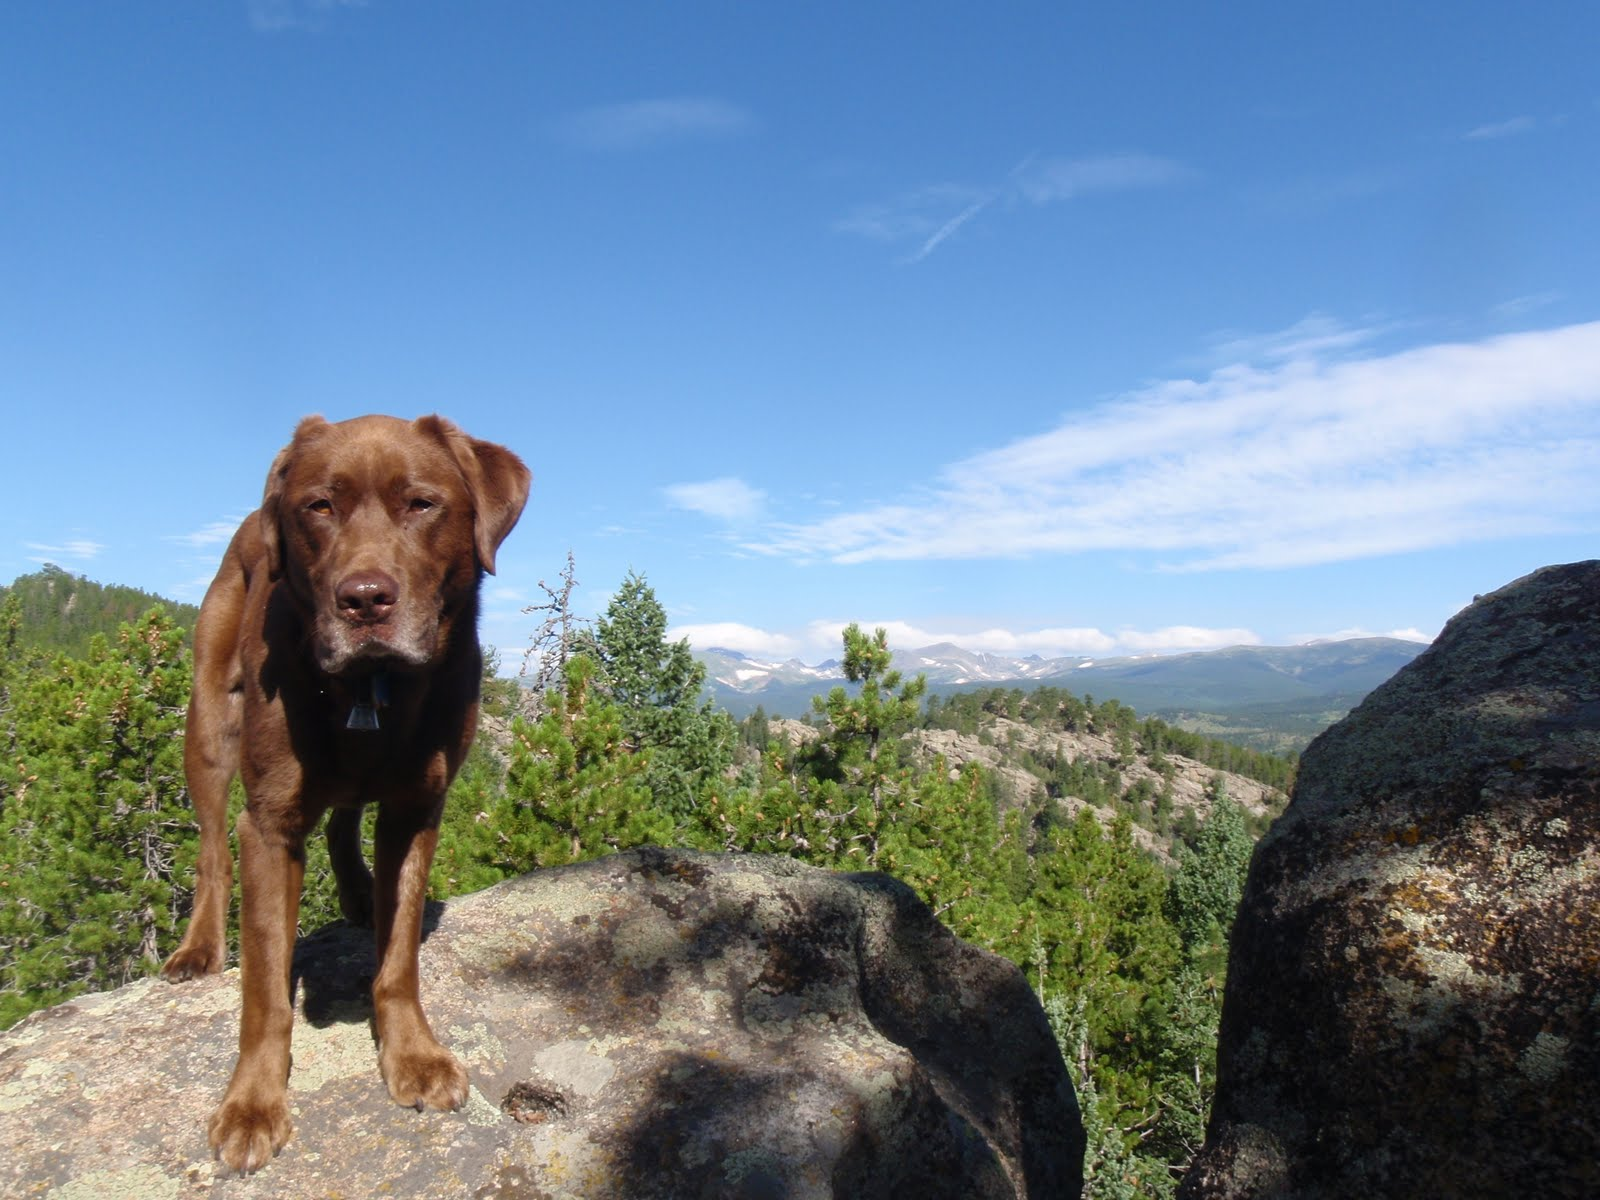 Romping and Rolling in the Rockies: Caves, a bobcat, and Zen riding